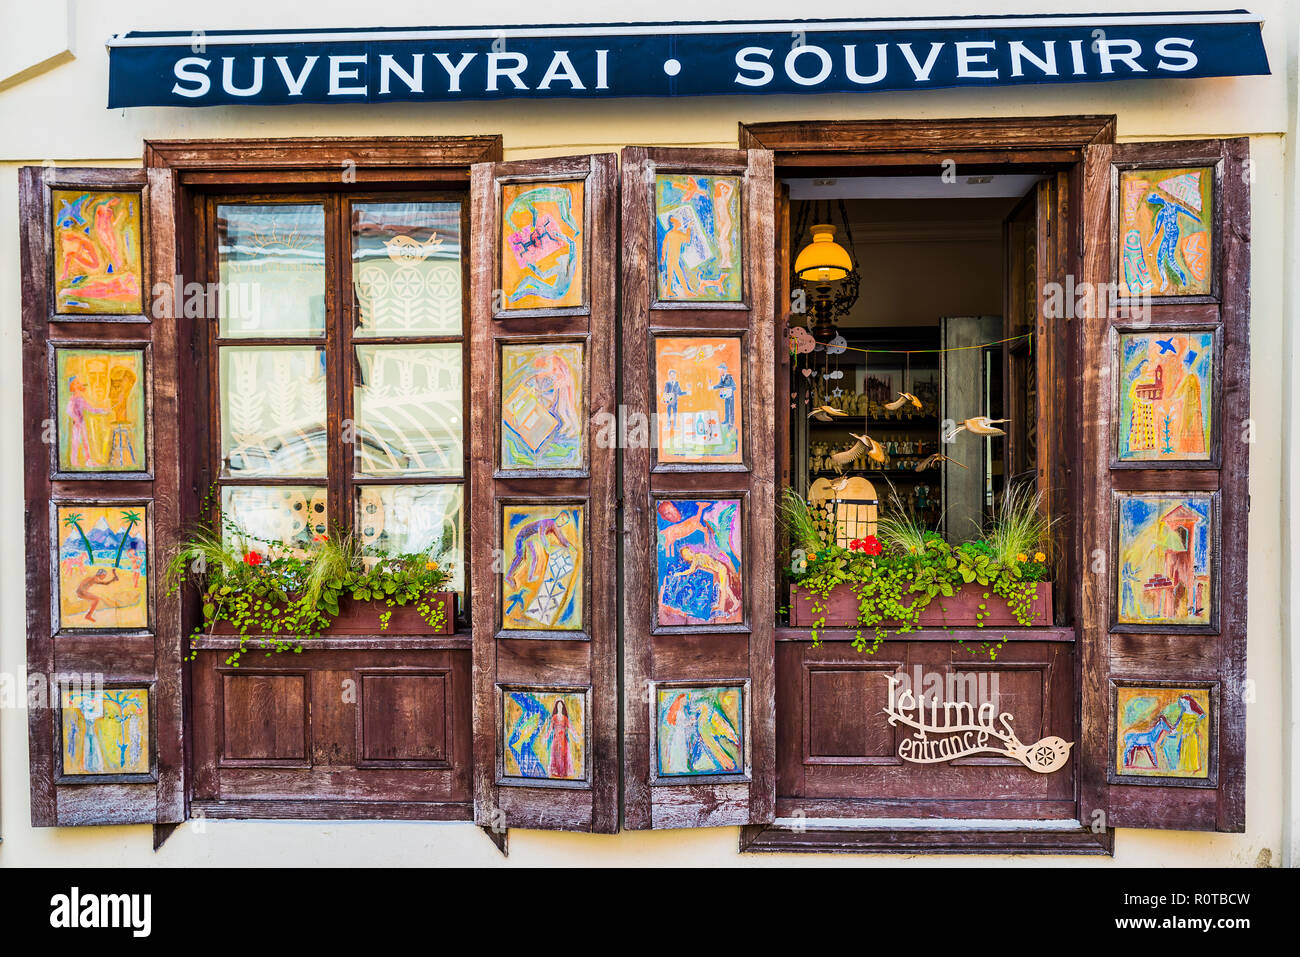 Gift shop. Kaunas, Kaunas County, Lithuania, Baltic states, Europe. - Stock Image